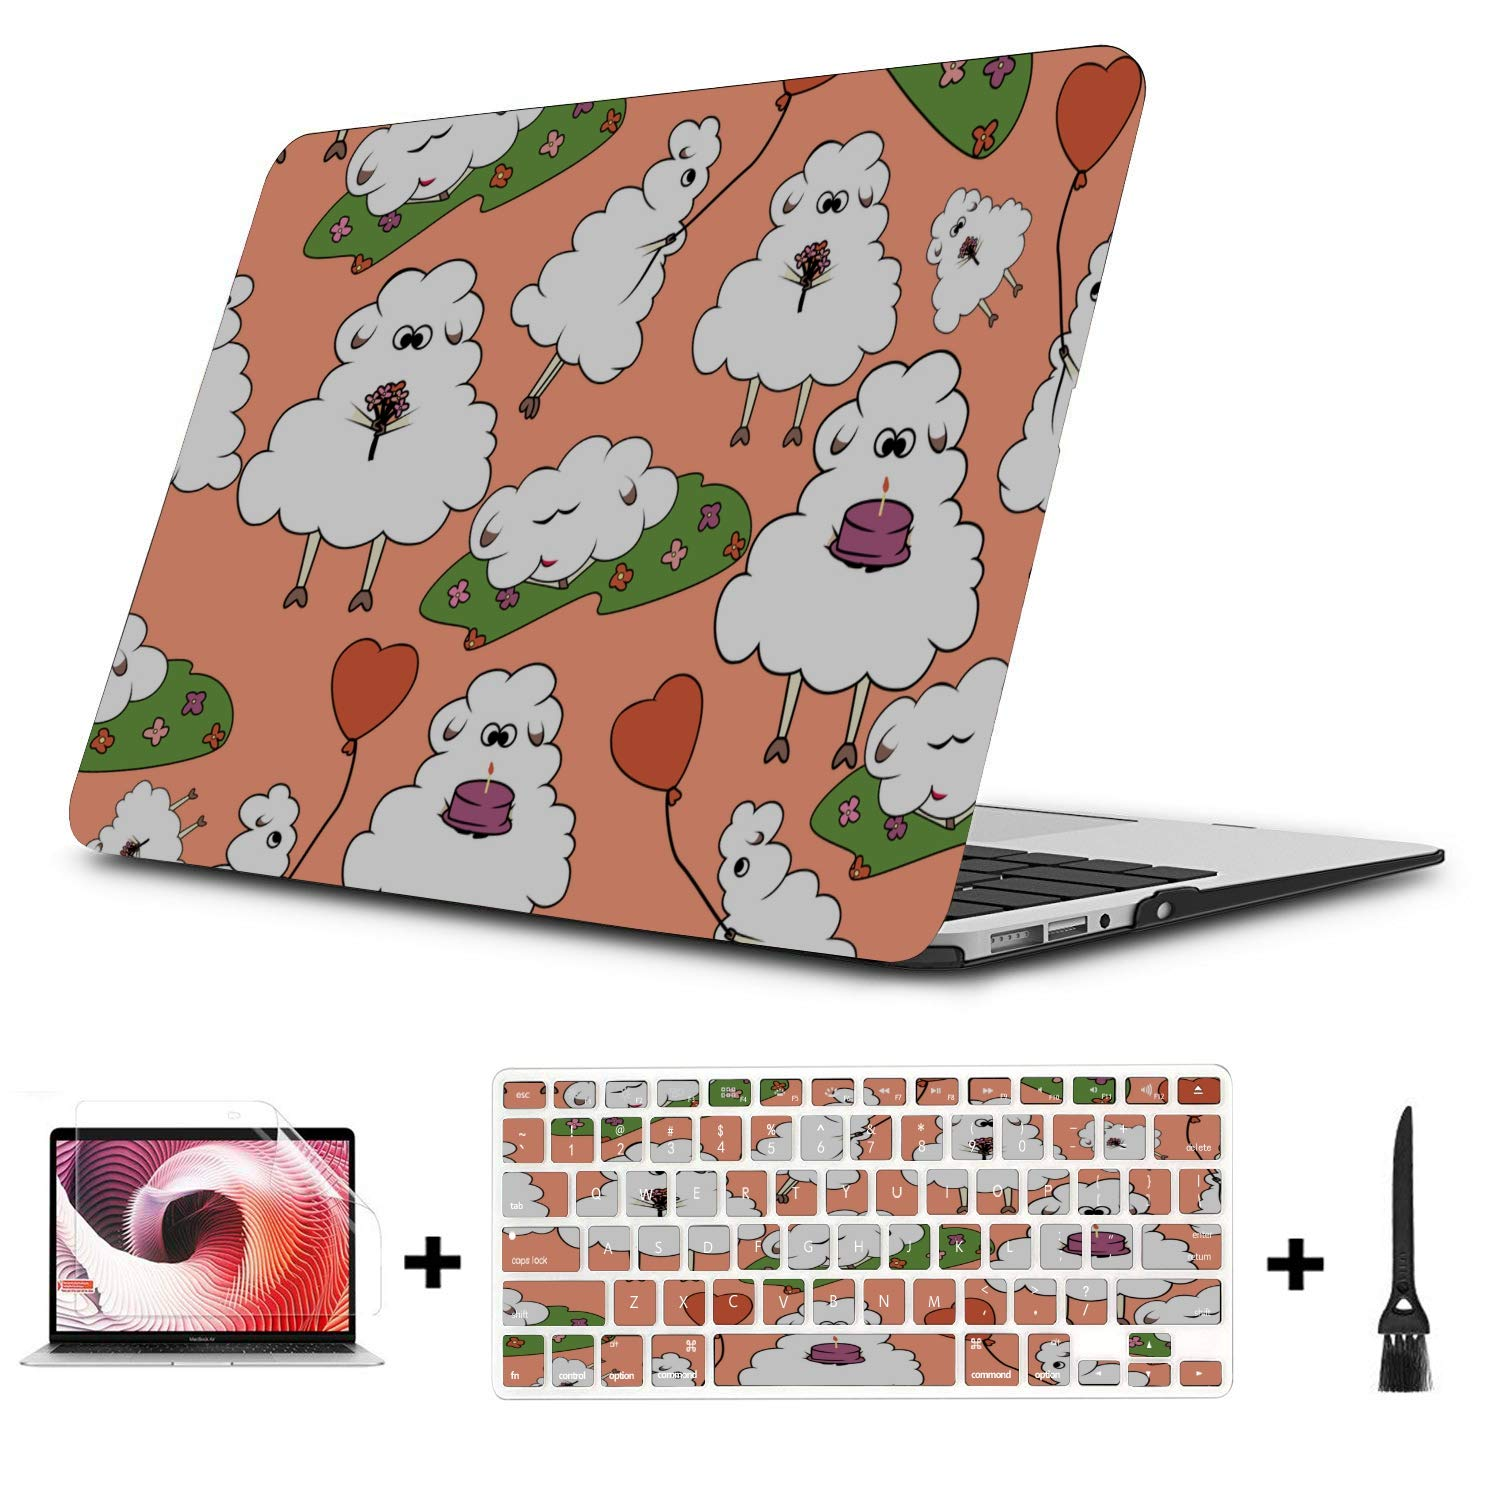 Mac Covers Sheep Retro Wild Animal Naturel Plastic Hard Shell Compatible Mac Air 11 Pro 13 15 Laptop Case Protection for MacBook 2016-2019 Version